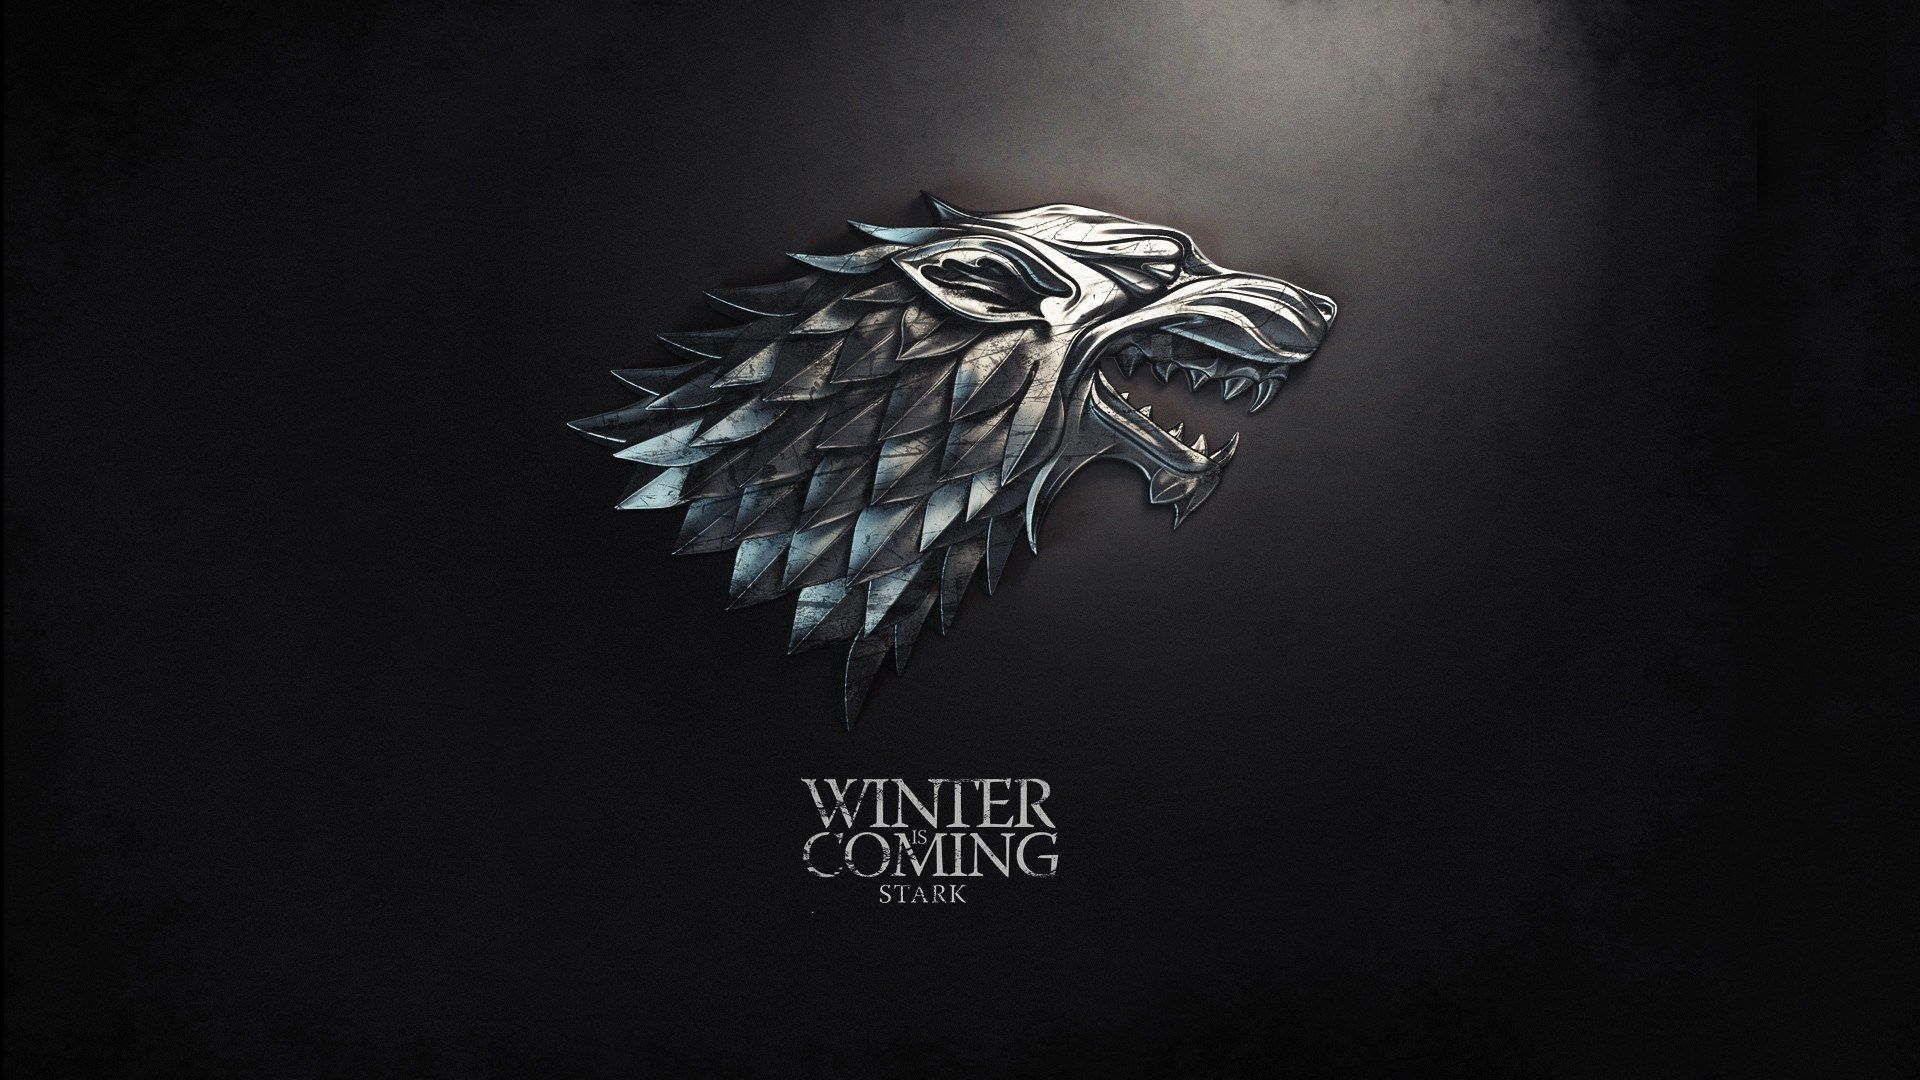 1920x1080 Game Of Thrones Wallpaper Of Desktop Background Winter Is Coming Wallpaper Game Of Thrones Houses Game Of Thrones